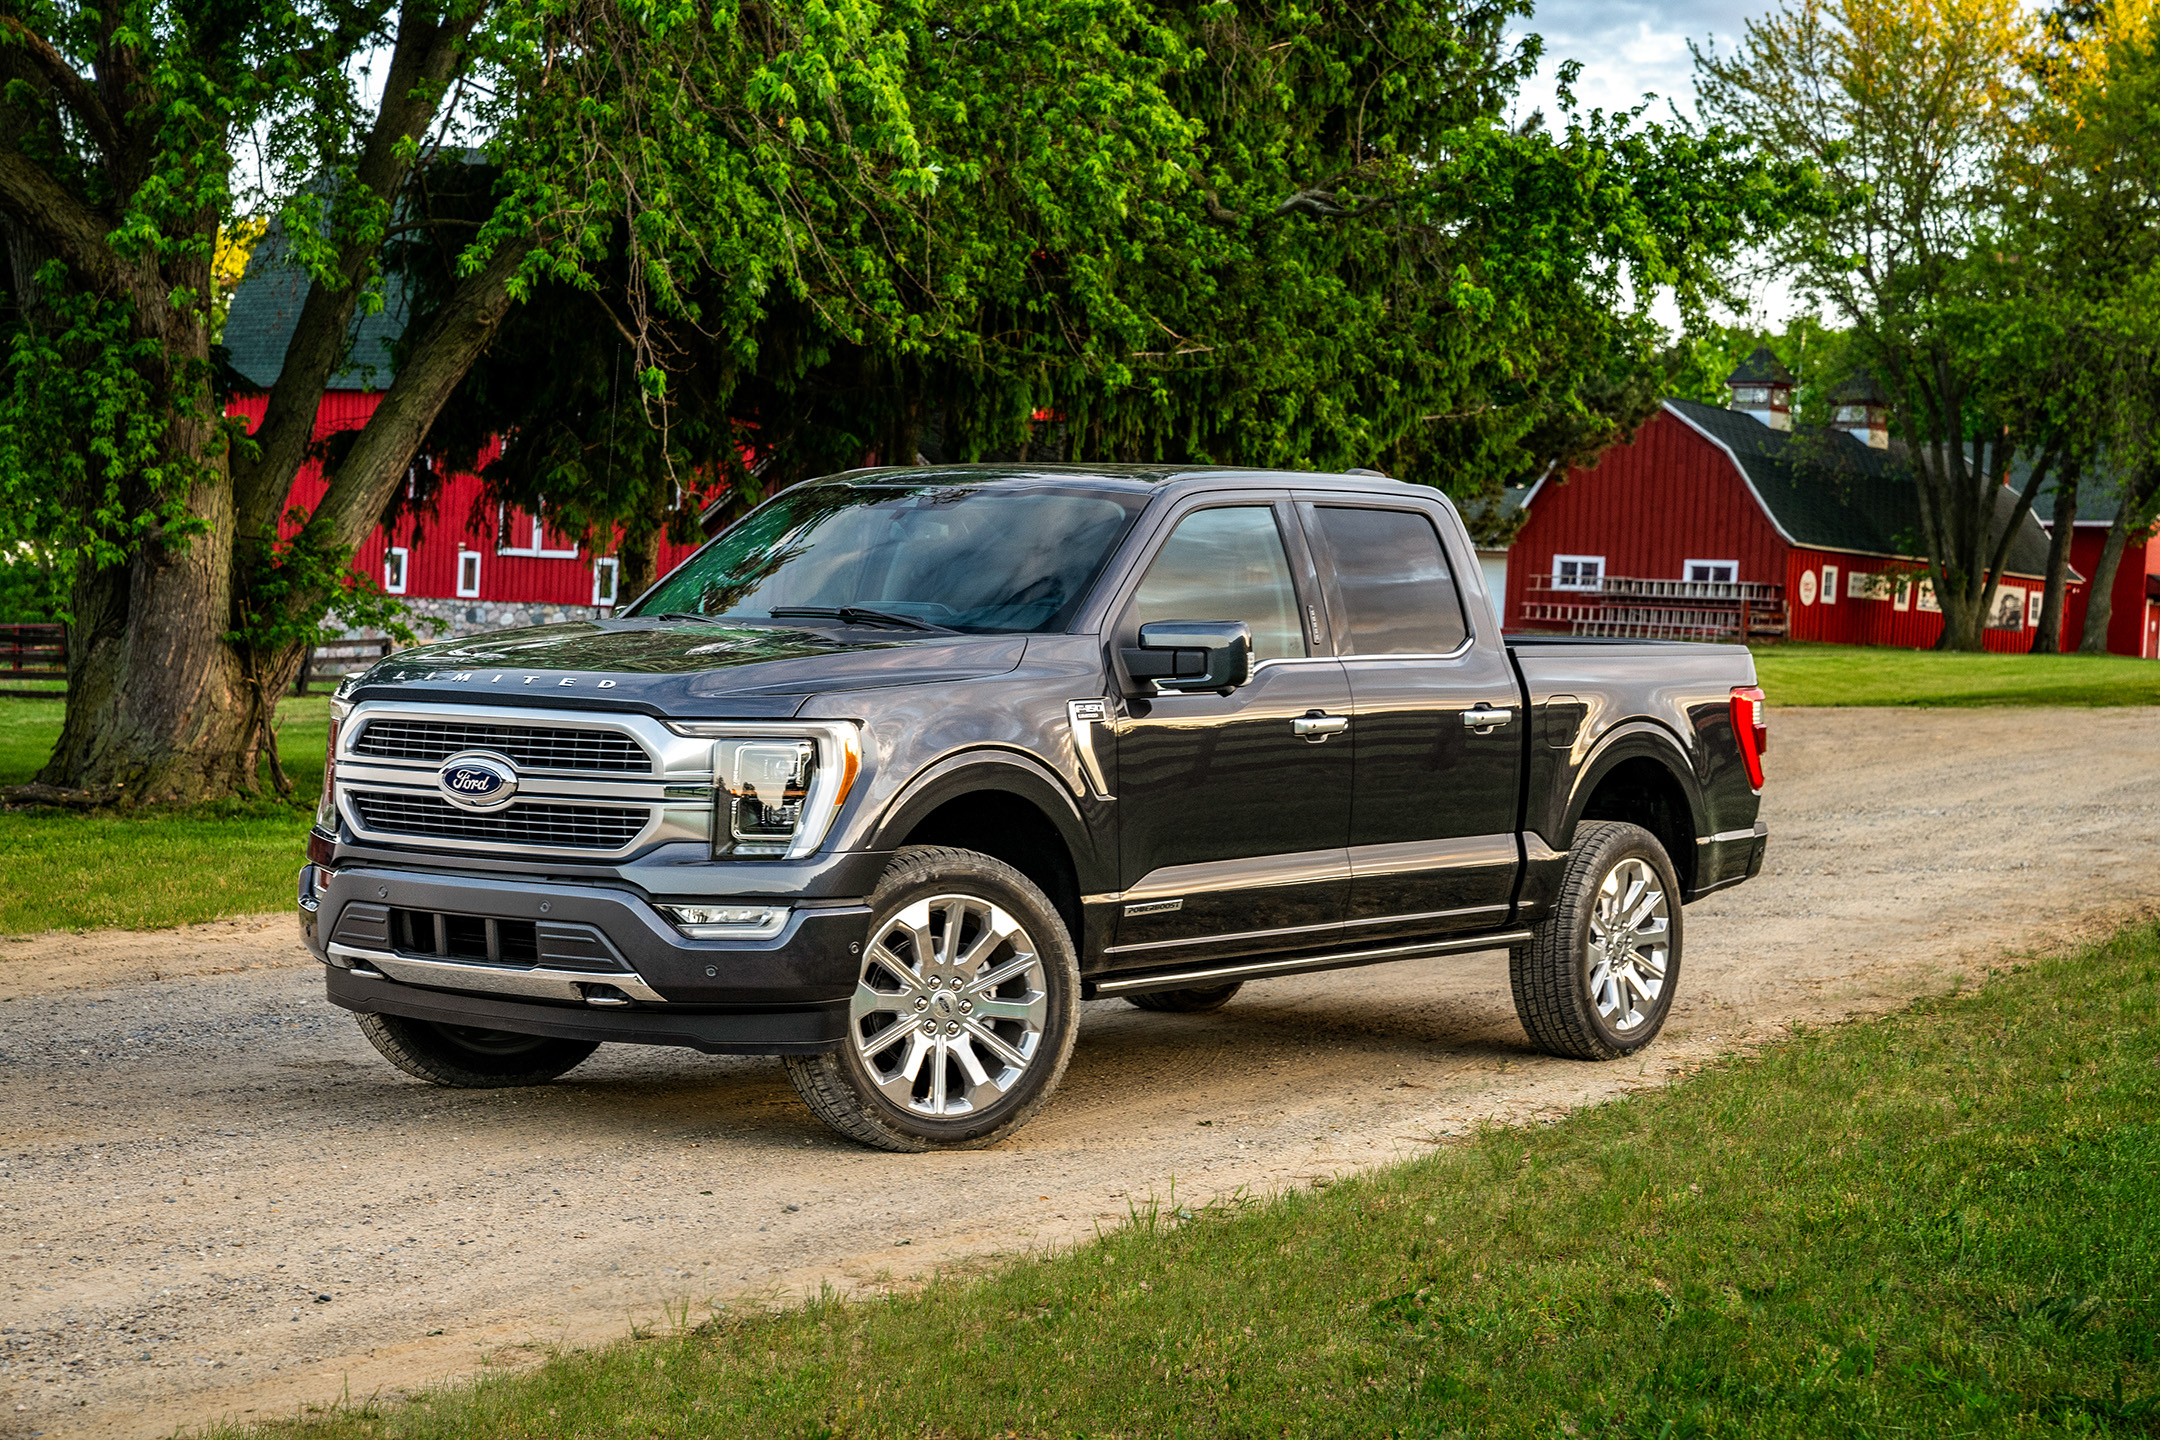 2021 Ford F-150 First Look Video: Something Old, Something New